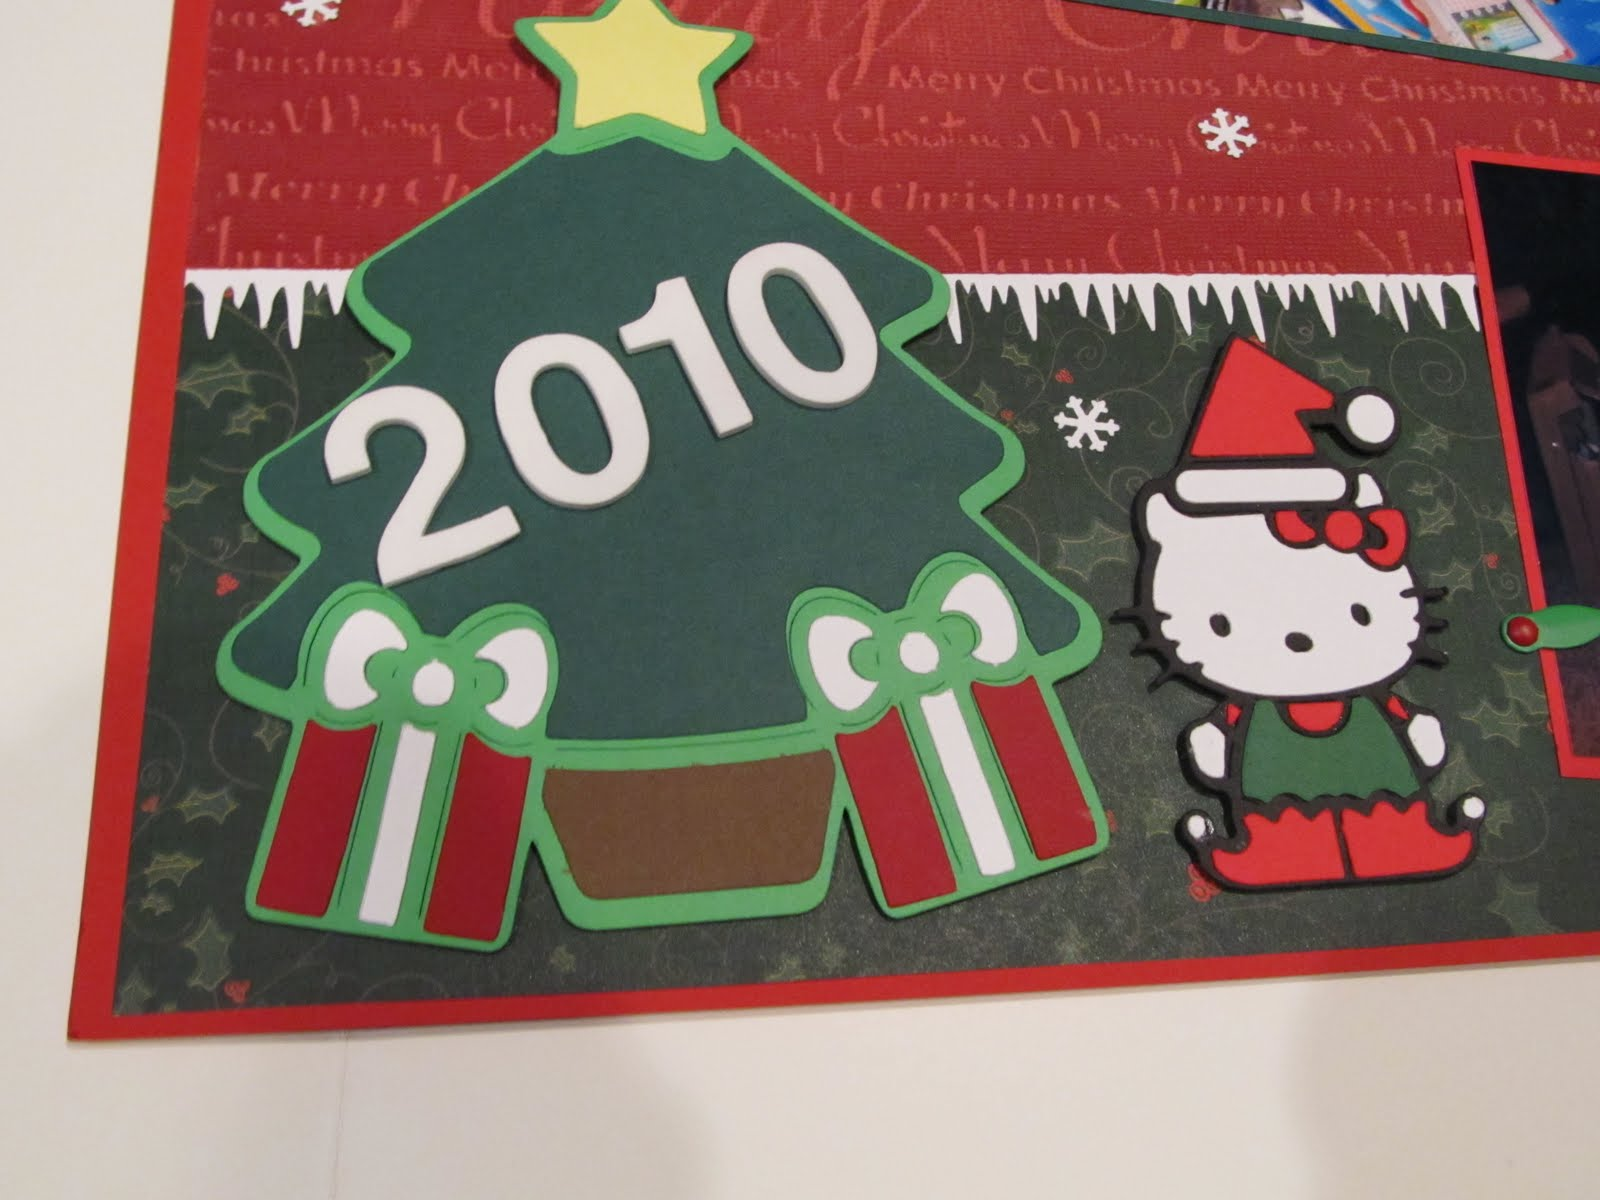 Creative cricut designs more hello kitty merry christmas hello kitty greetings cricut cartridge hello kitty 3 14 tree 6 title 2 34 m4hsunfo